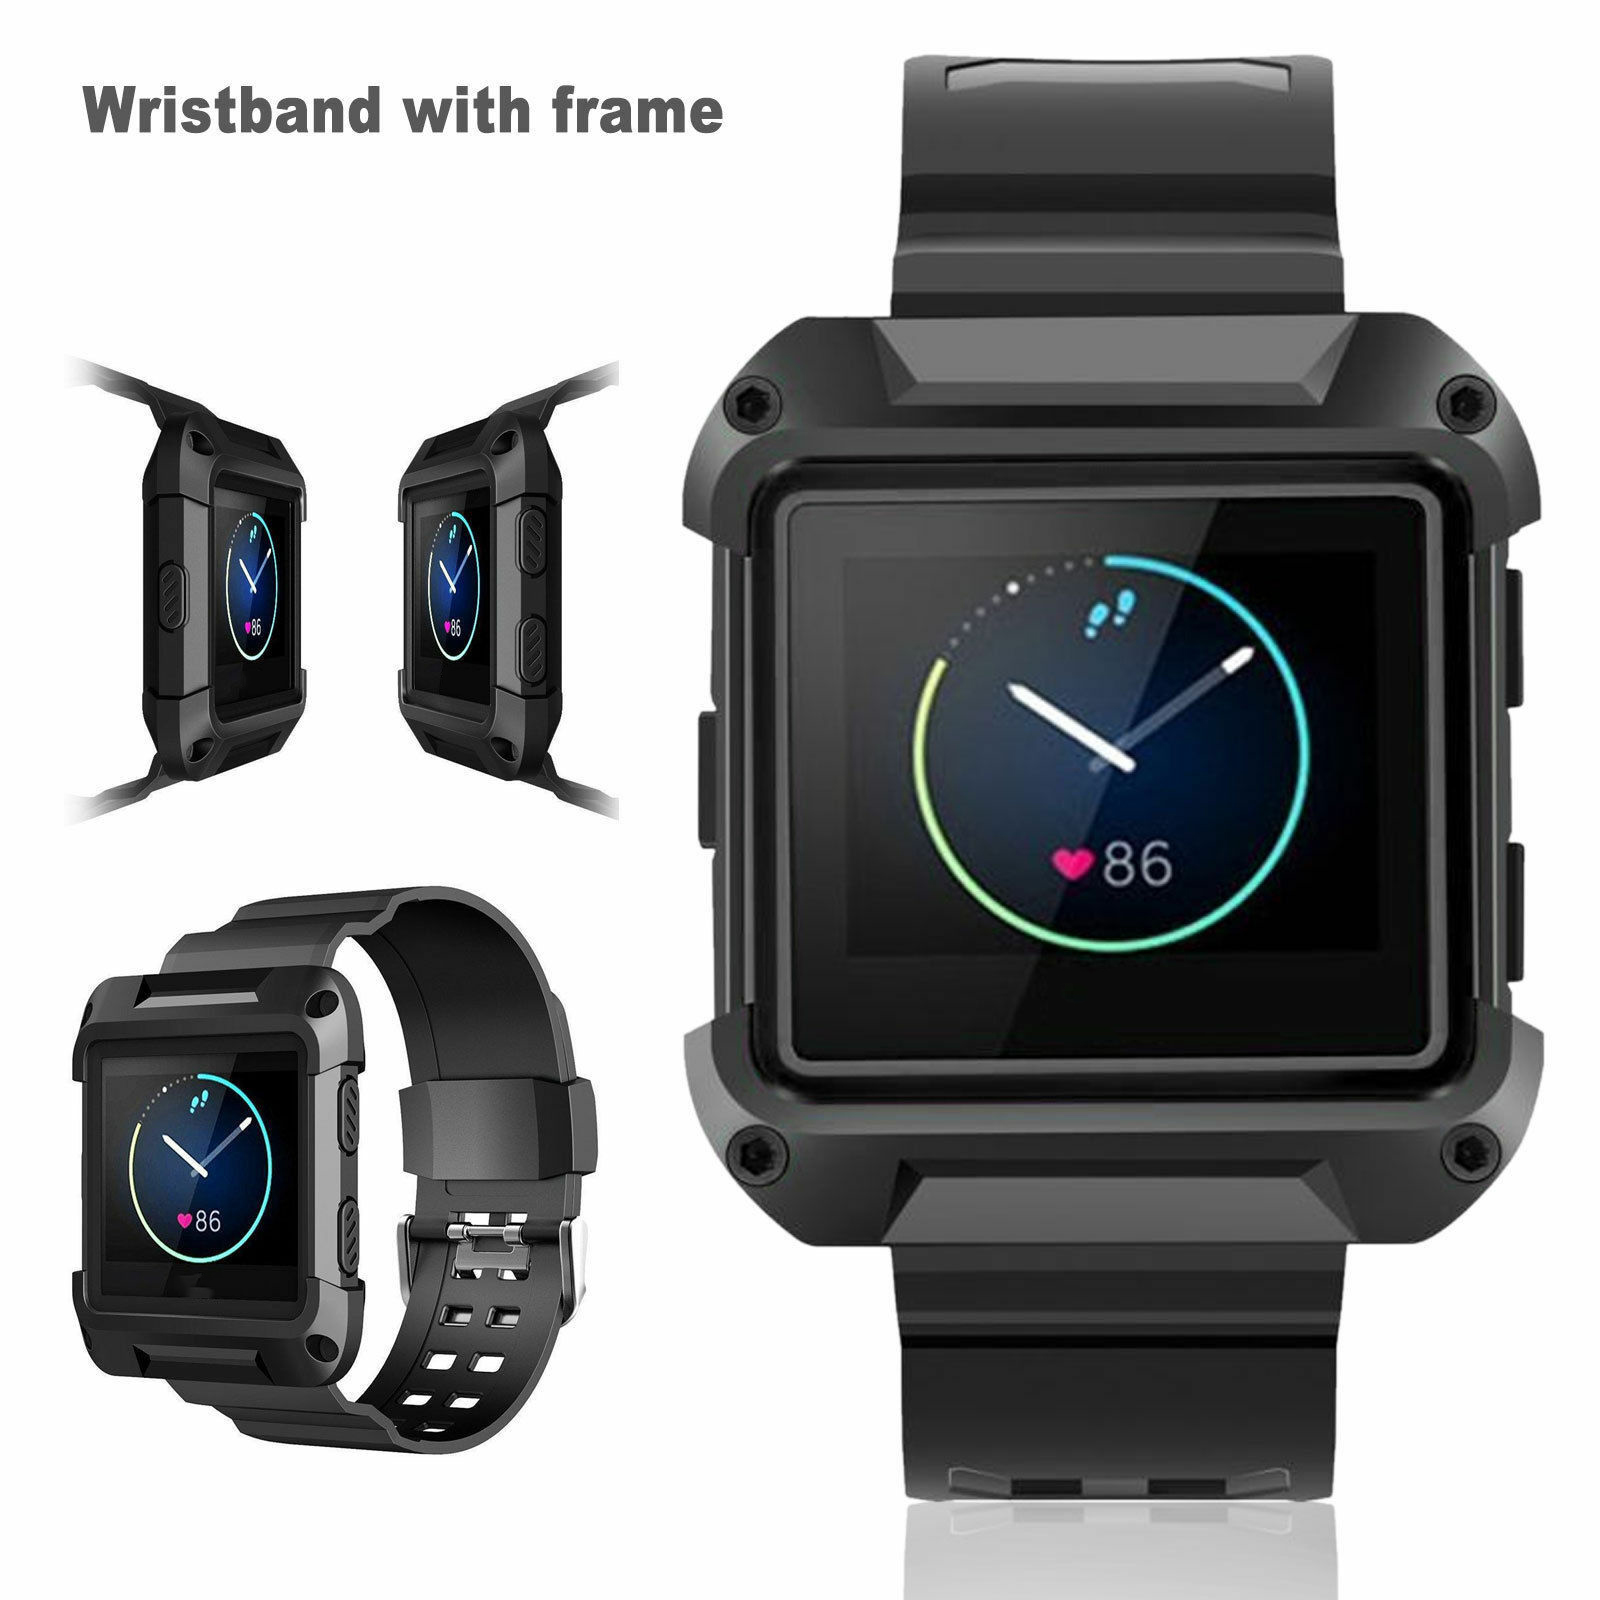 Black-Armor-Replacement-Large-Wristband-Watch-Band-Strap-Frame-for-FITBIT-BLAZE thumbnail 10